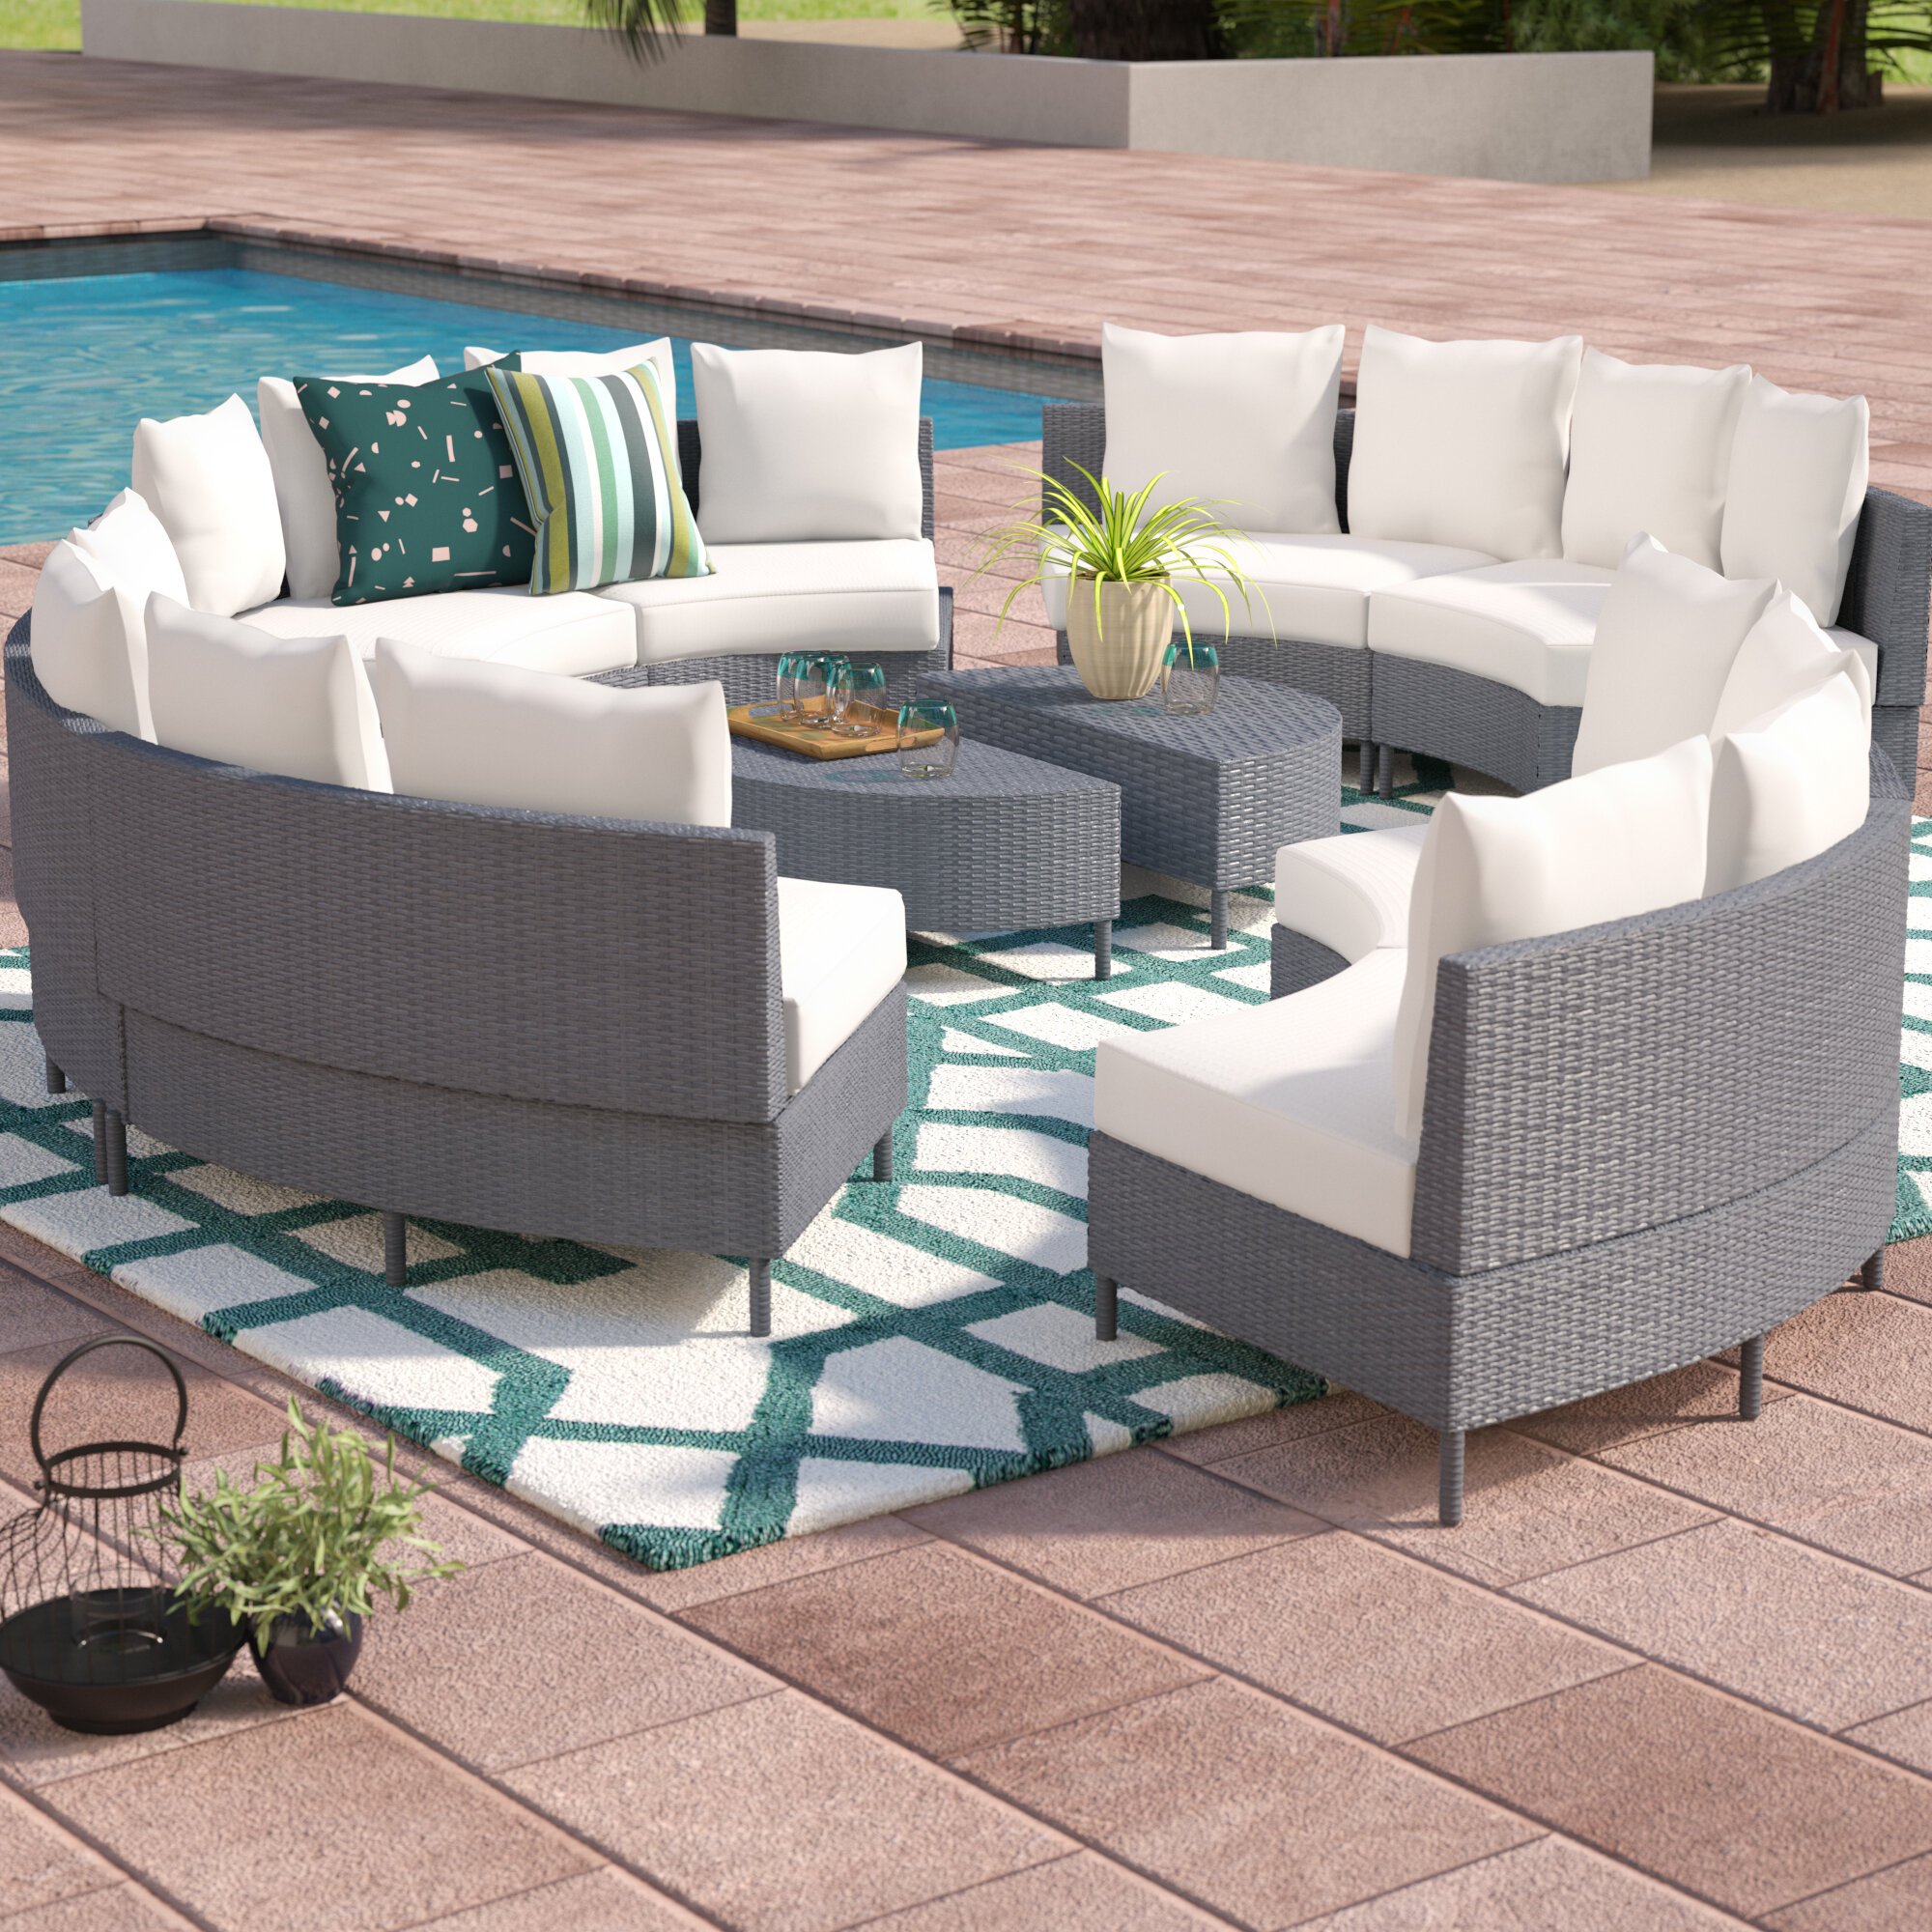 sectional cushions pdx ansonia piece set rosecliff with patio outdoor heights sale